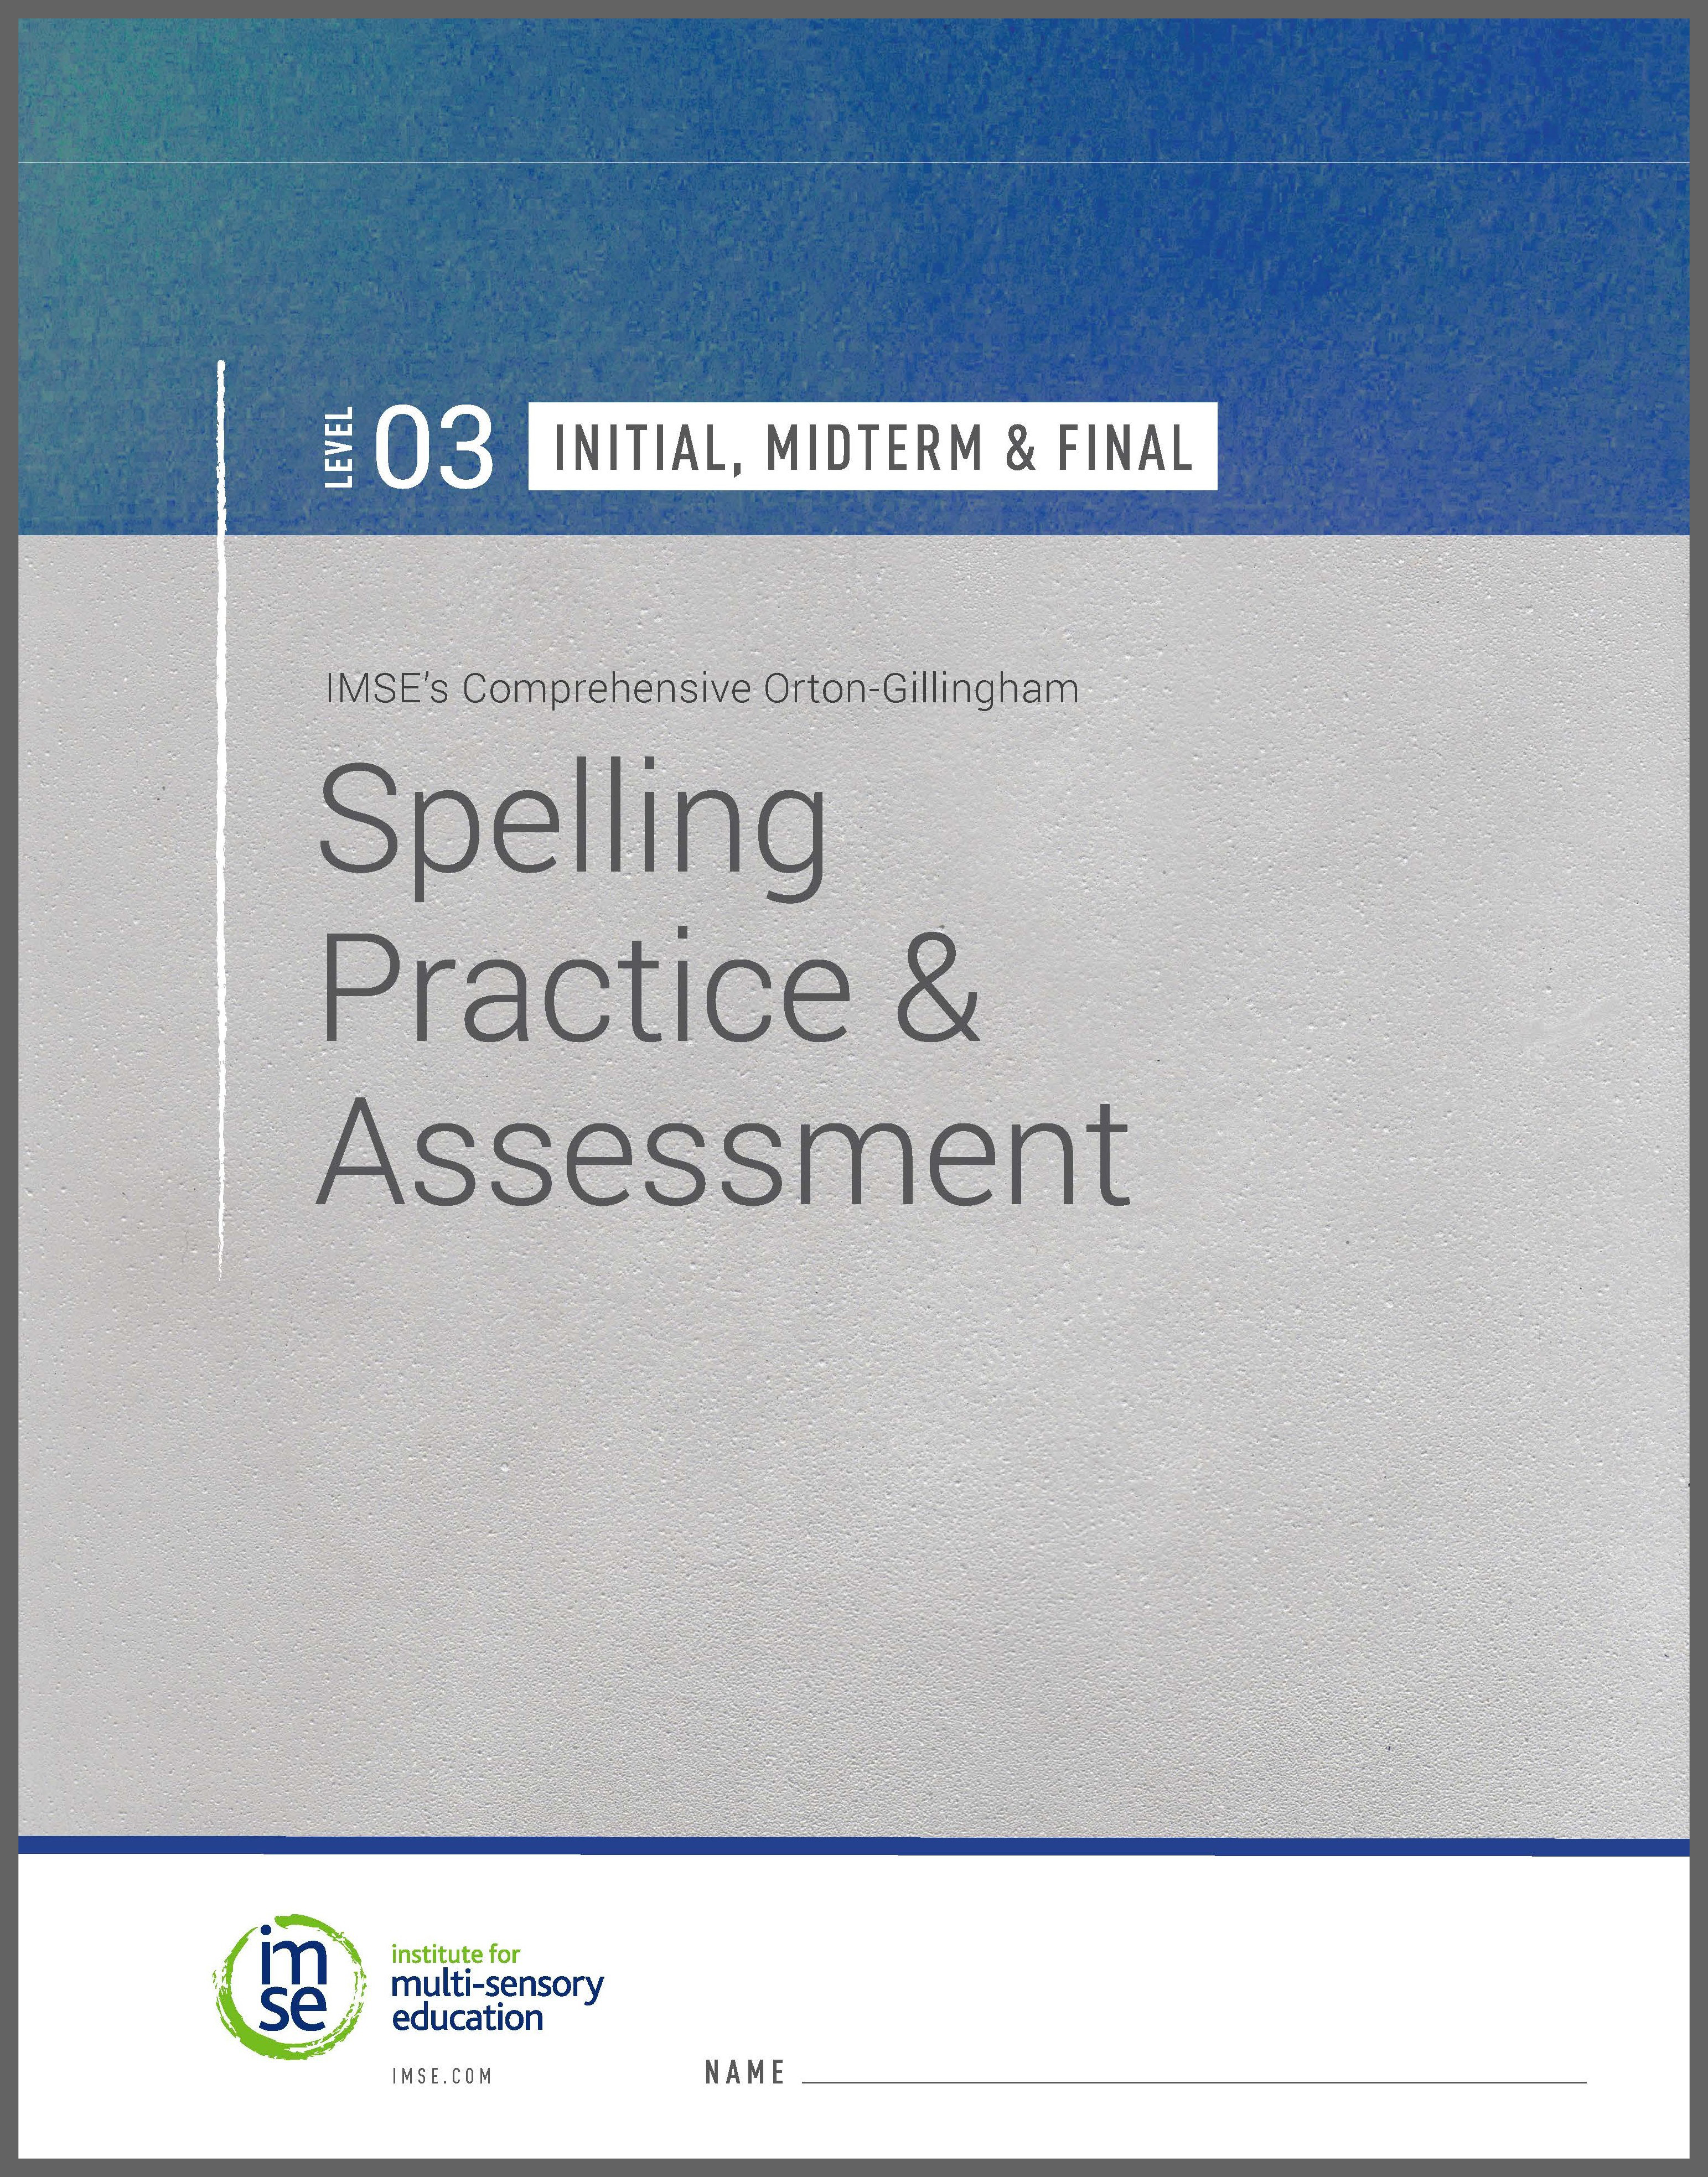 Level 03 Spelling Practice and Assessment - Initial, Midterm & Final